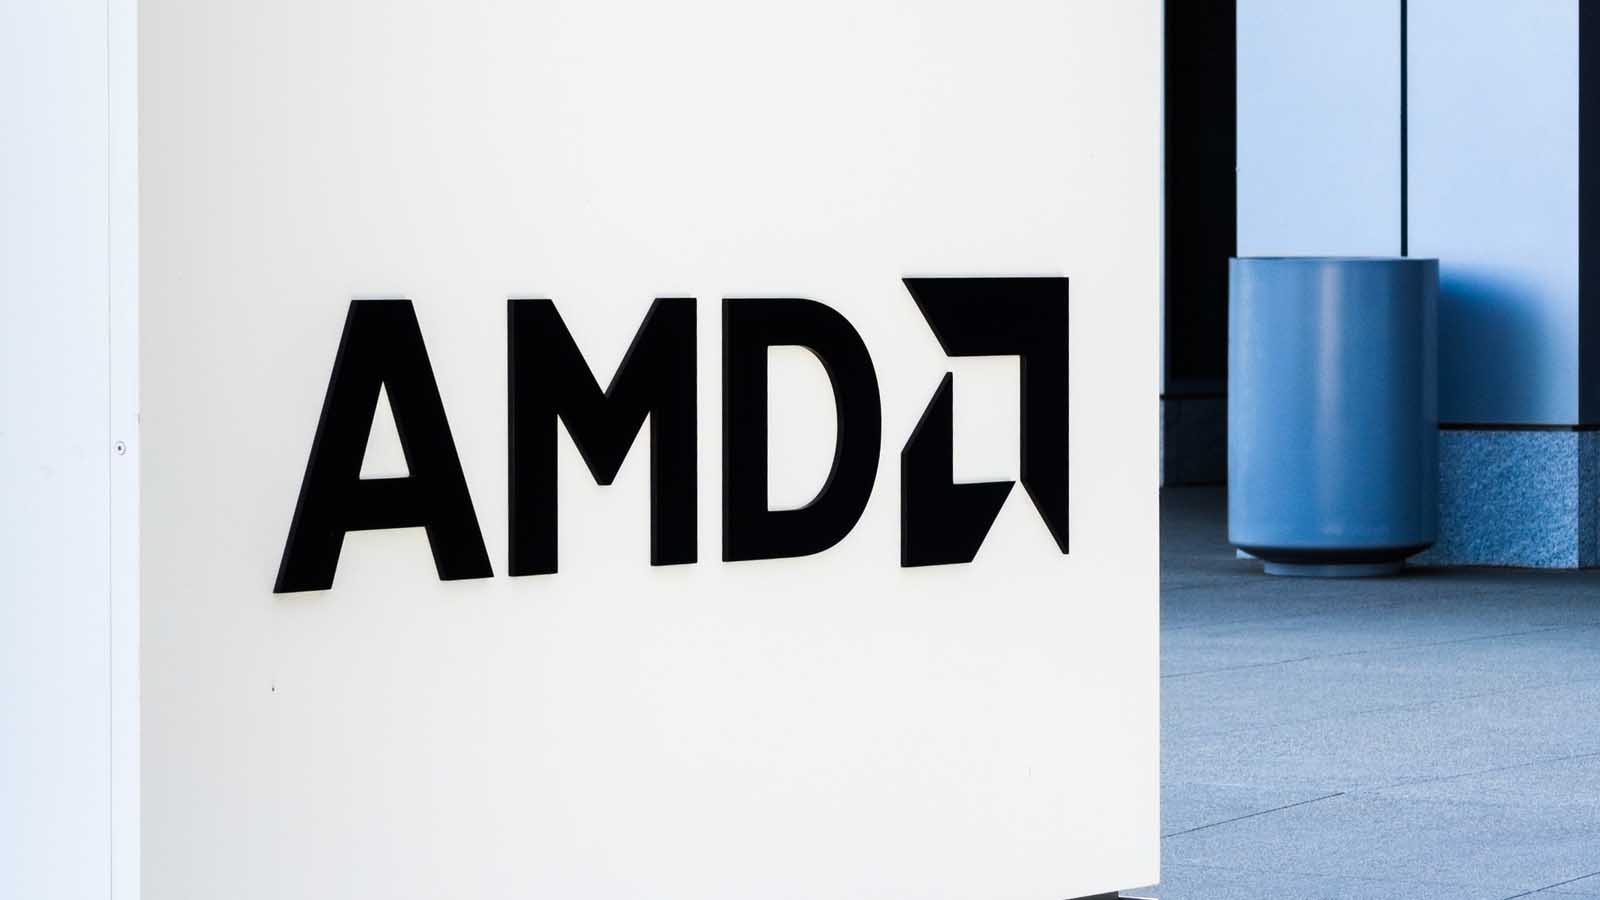 With Amd Facing New Threats Investors Should Avoid Amd Stock Investorplace